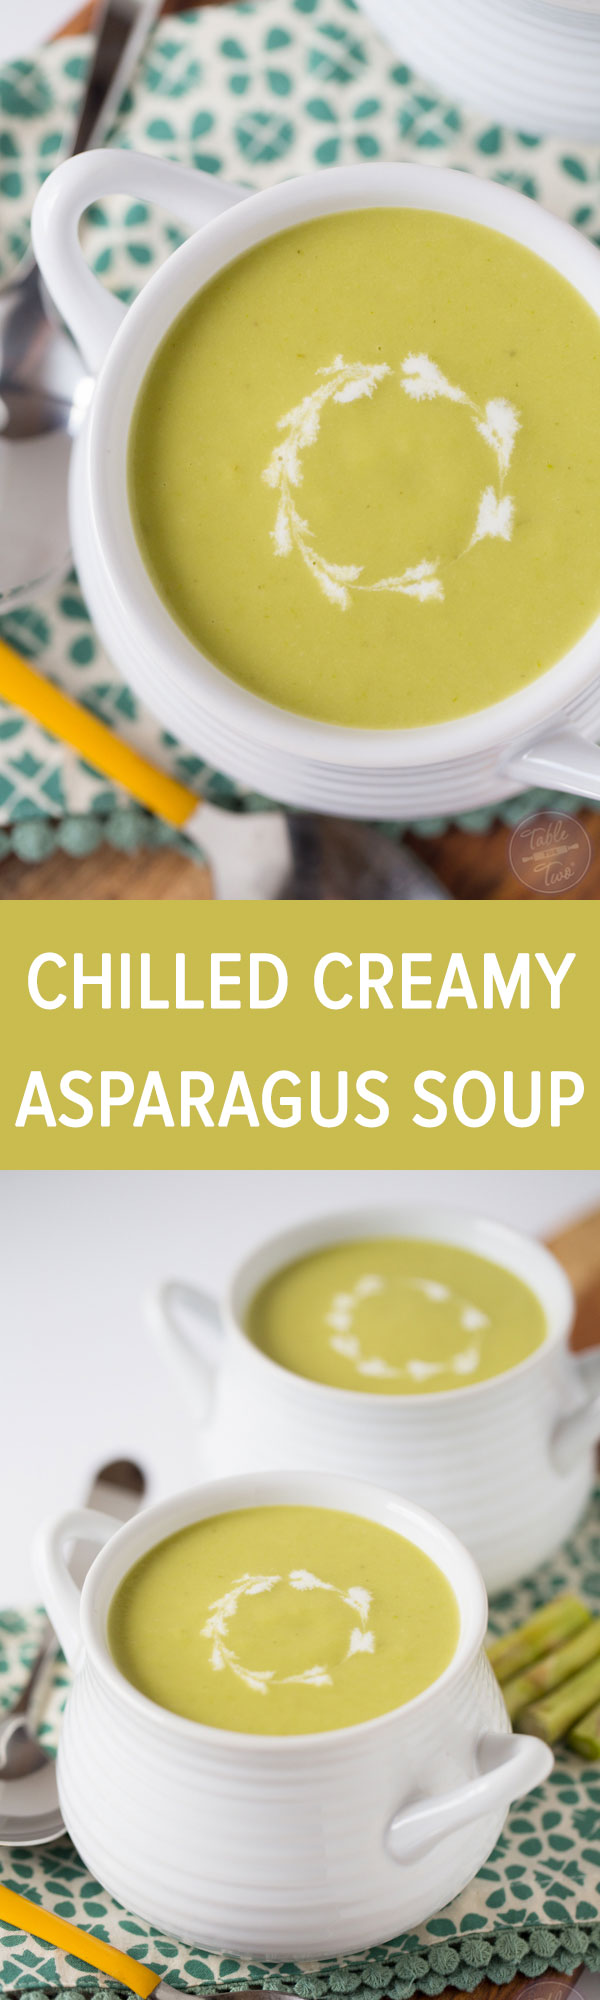 You'll want a large bowl of this chilled creamy asparagus soup for the warm weather! It's so refreshing and cools you right down!